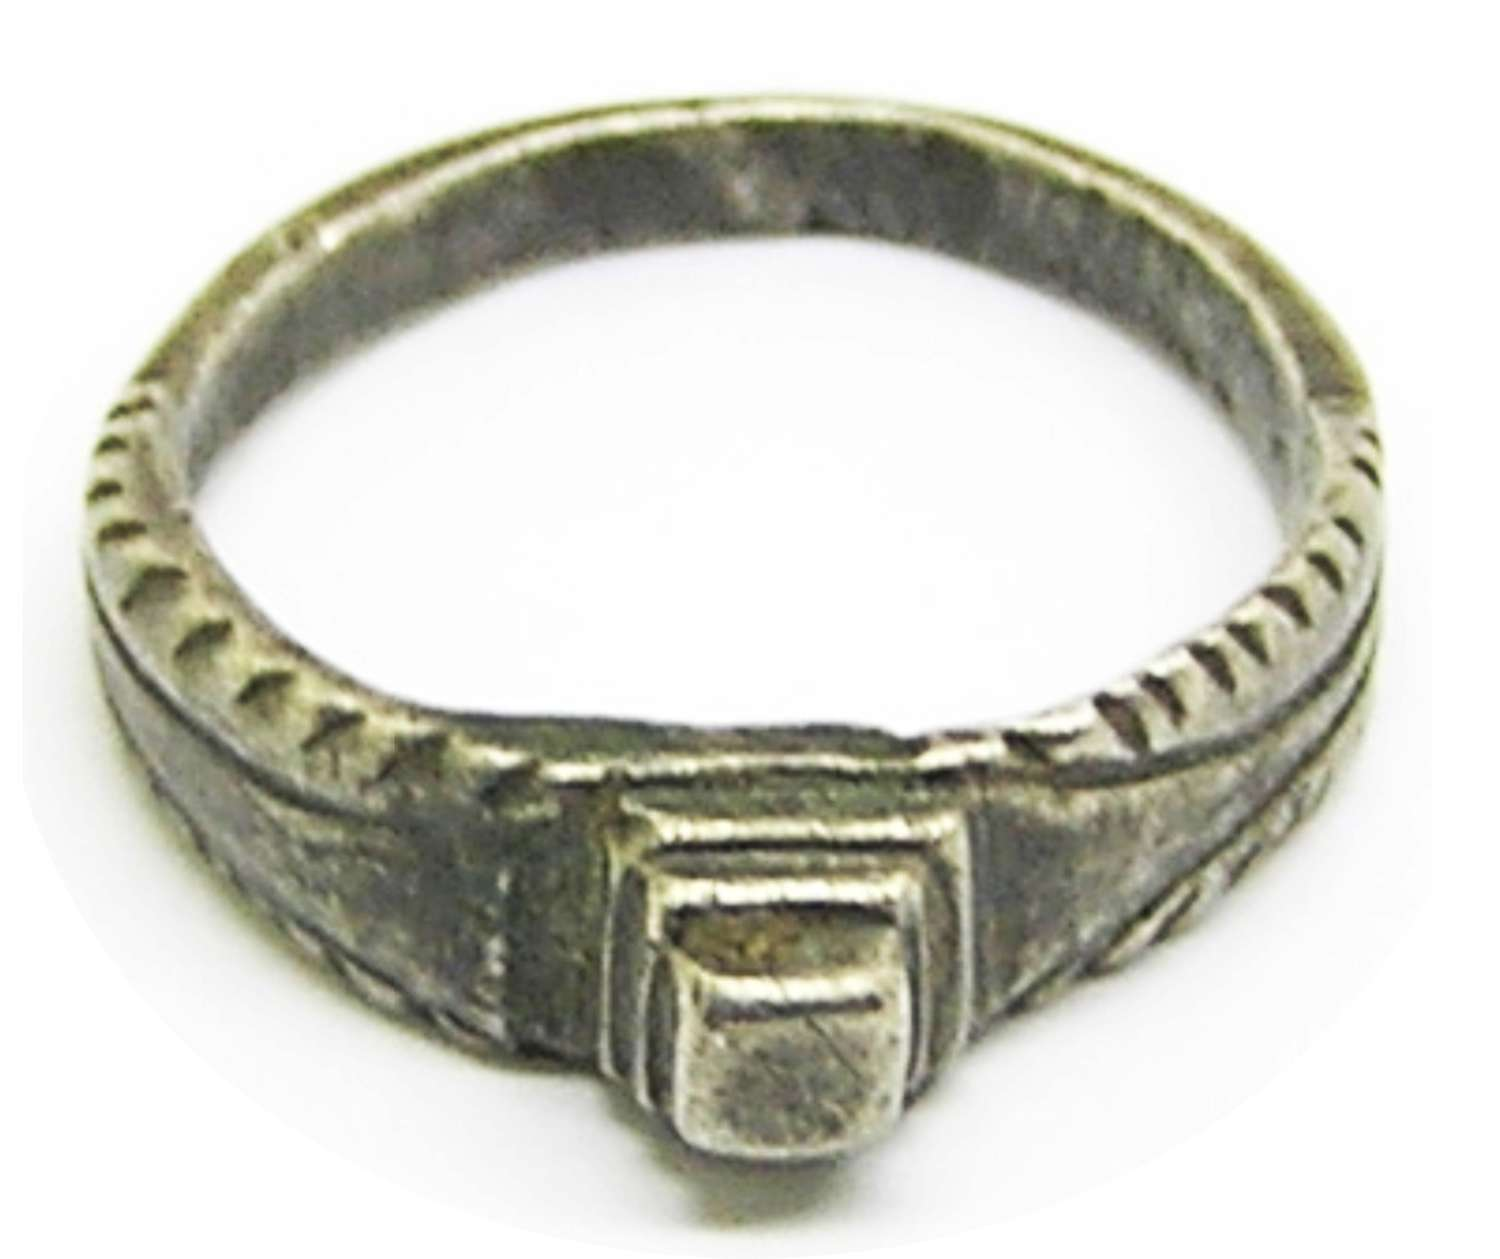 Medieval silver stirrup sing with a raised diamond bezel